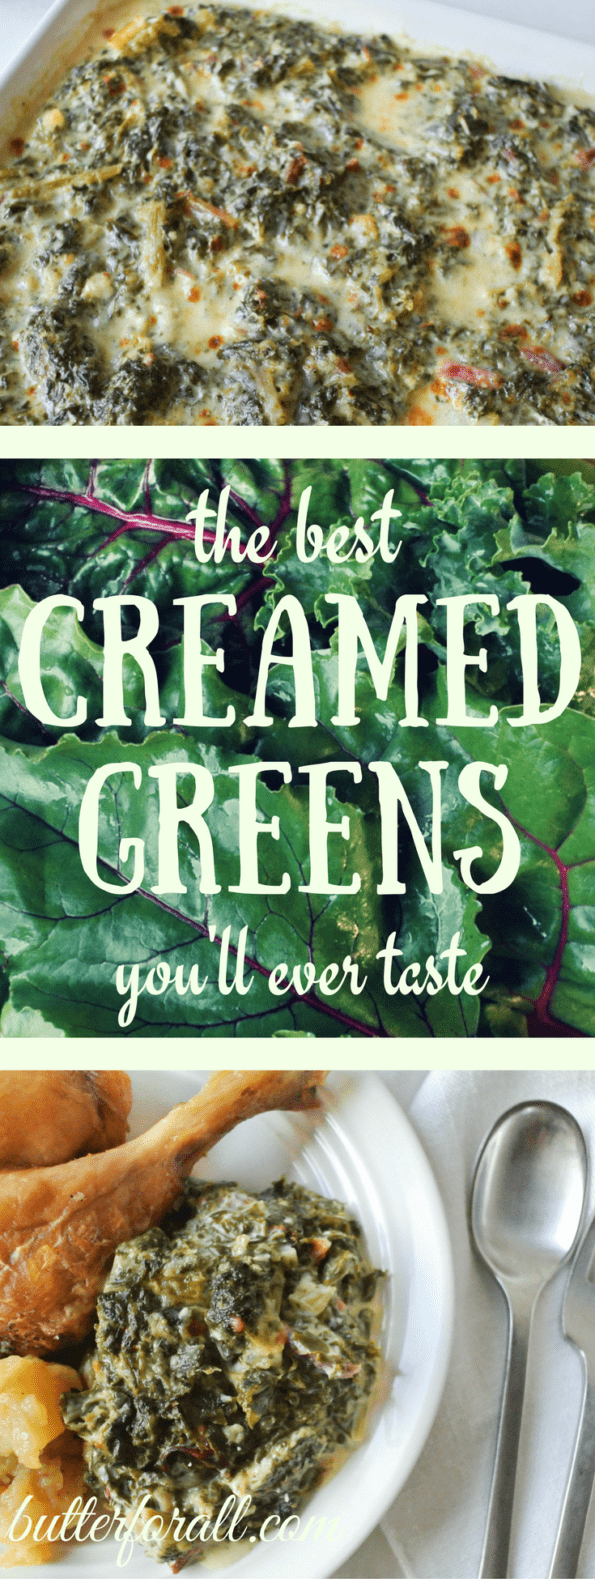 The Best Creamed Greens You'll Ever Taste - Low-Carb And Keto Friendly #realfood #beettops #cheese #brie #spinach #cream #healthyfats #lchf #keto #Thanksgiving #Christmas #sidedish